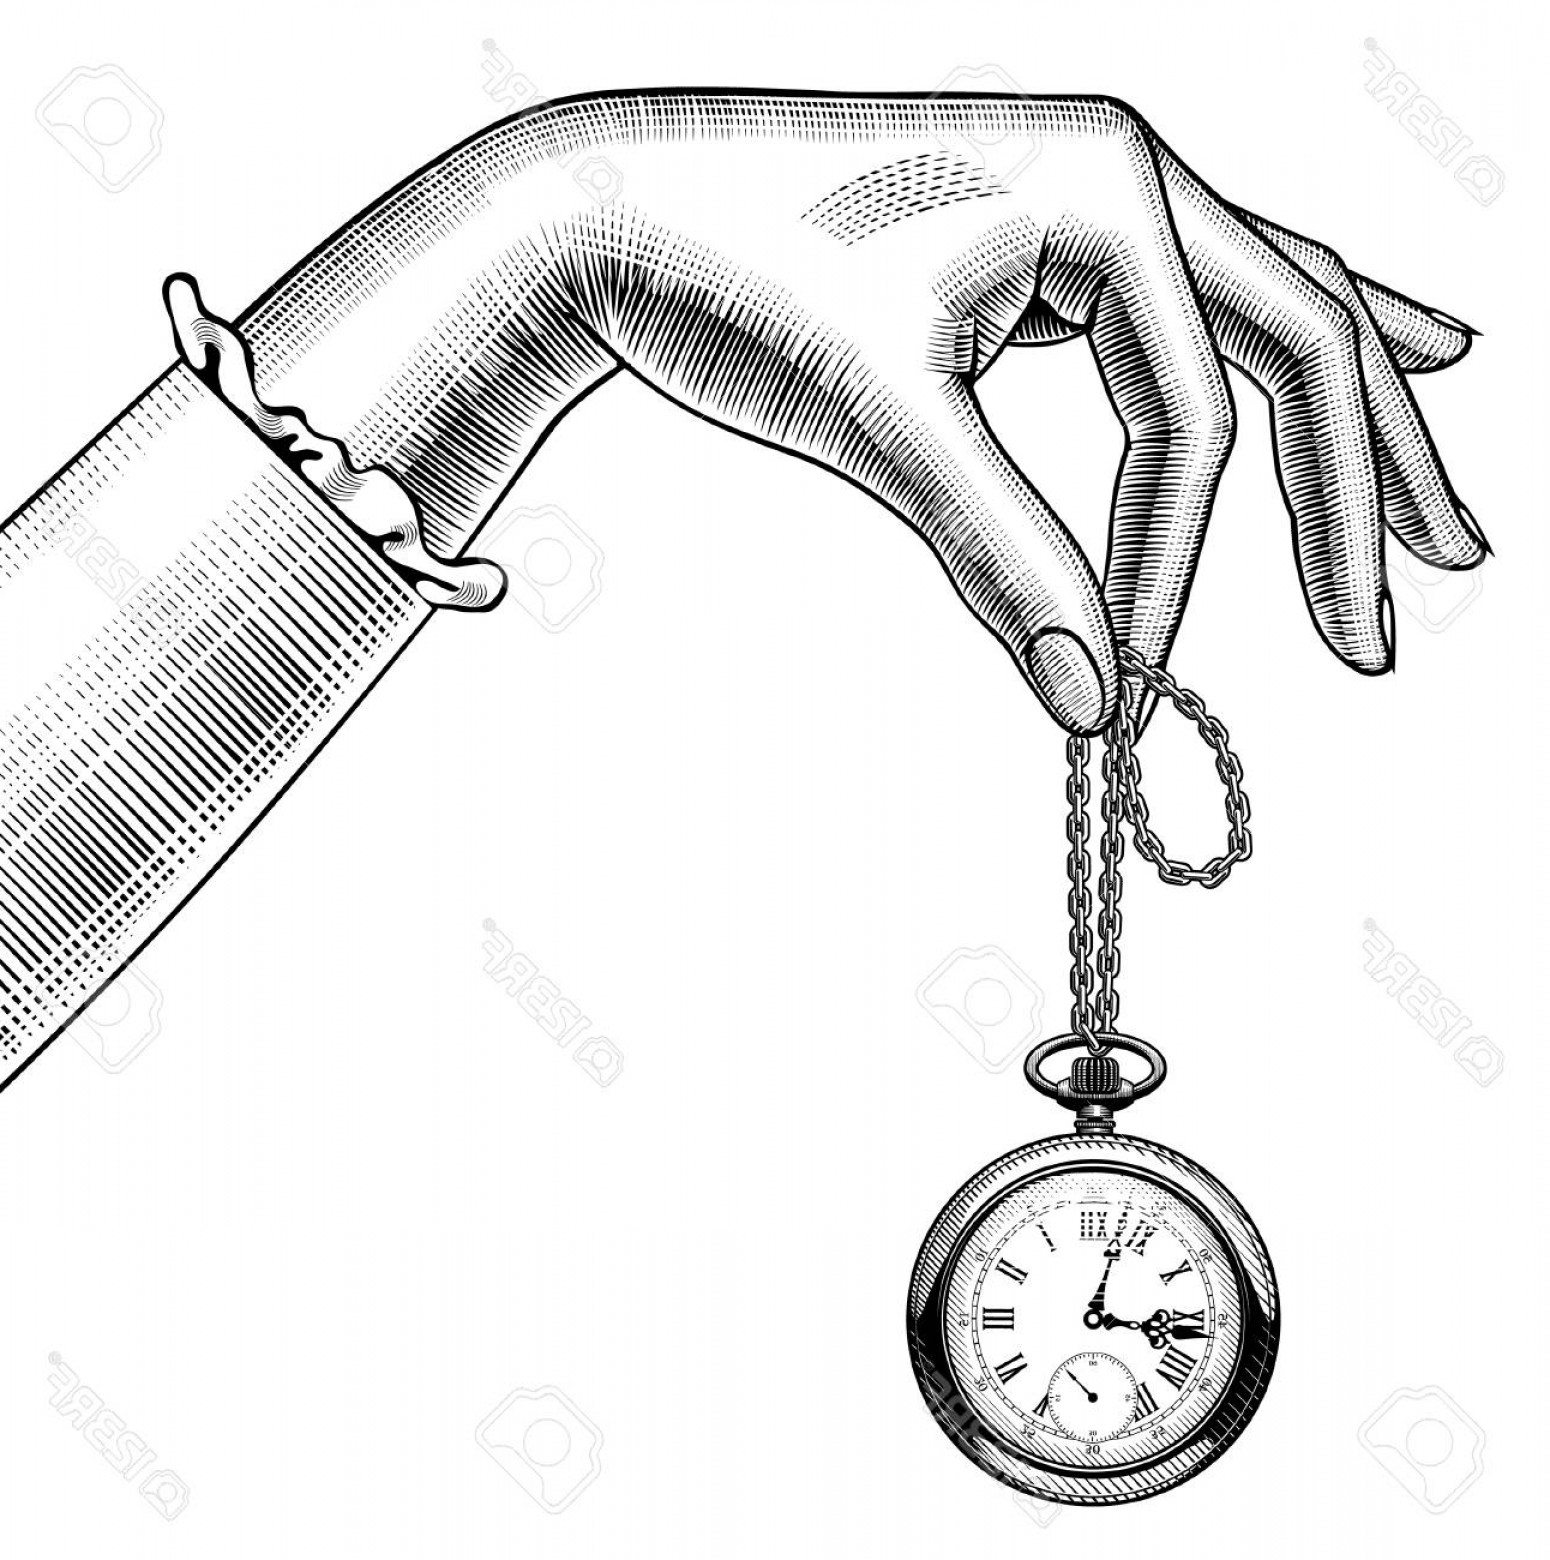 Fancy Wrist Watch Vector: Photostock Vector Woman S Hand With A Retro Pocket Watch Vintage Stylized Drawing Vector Illustration